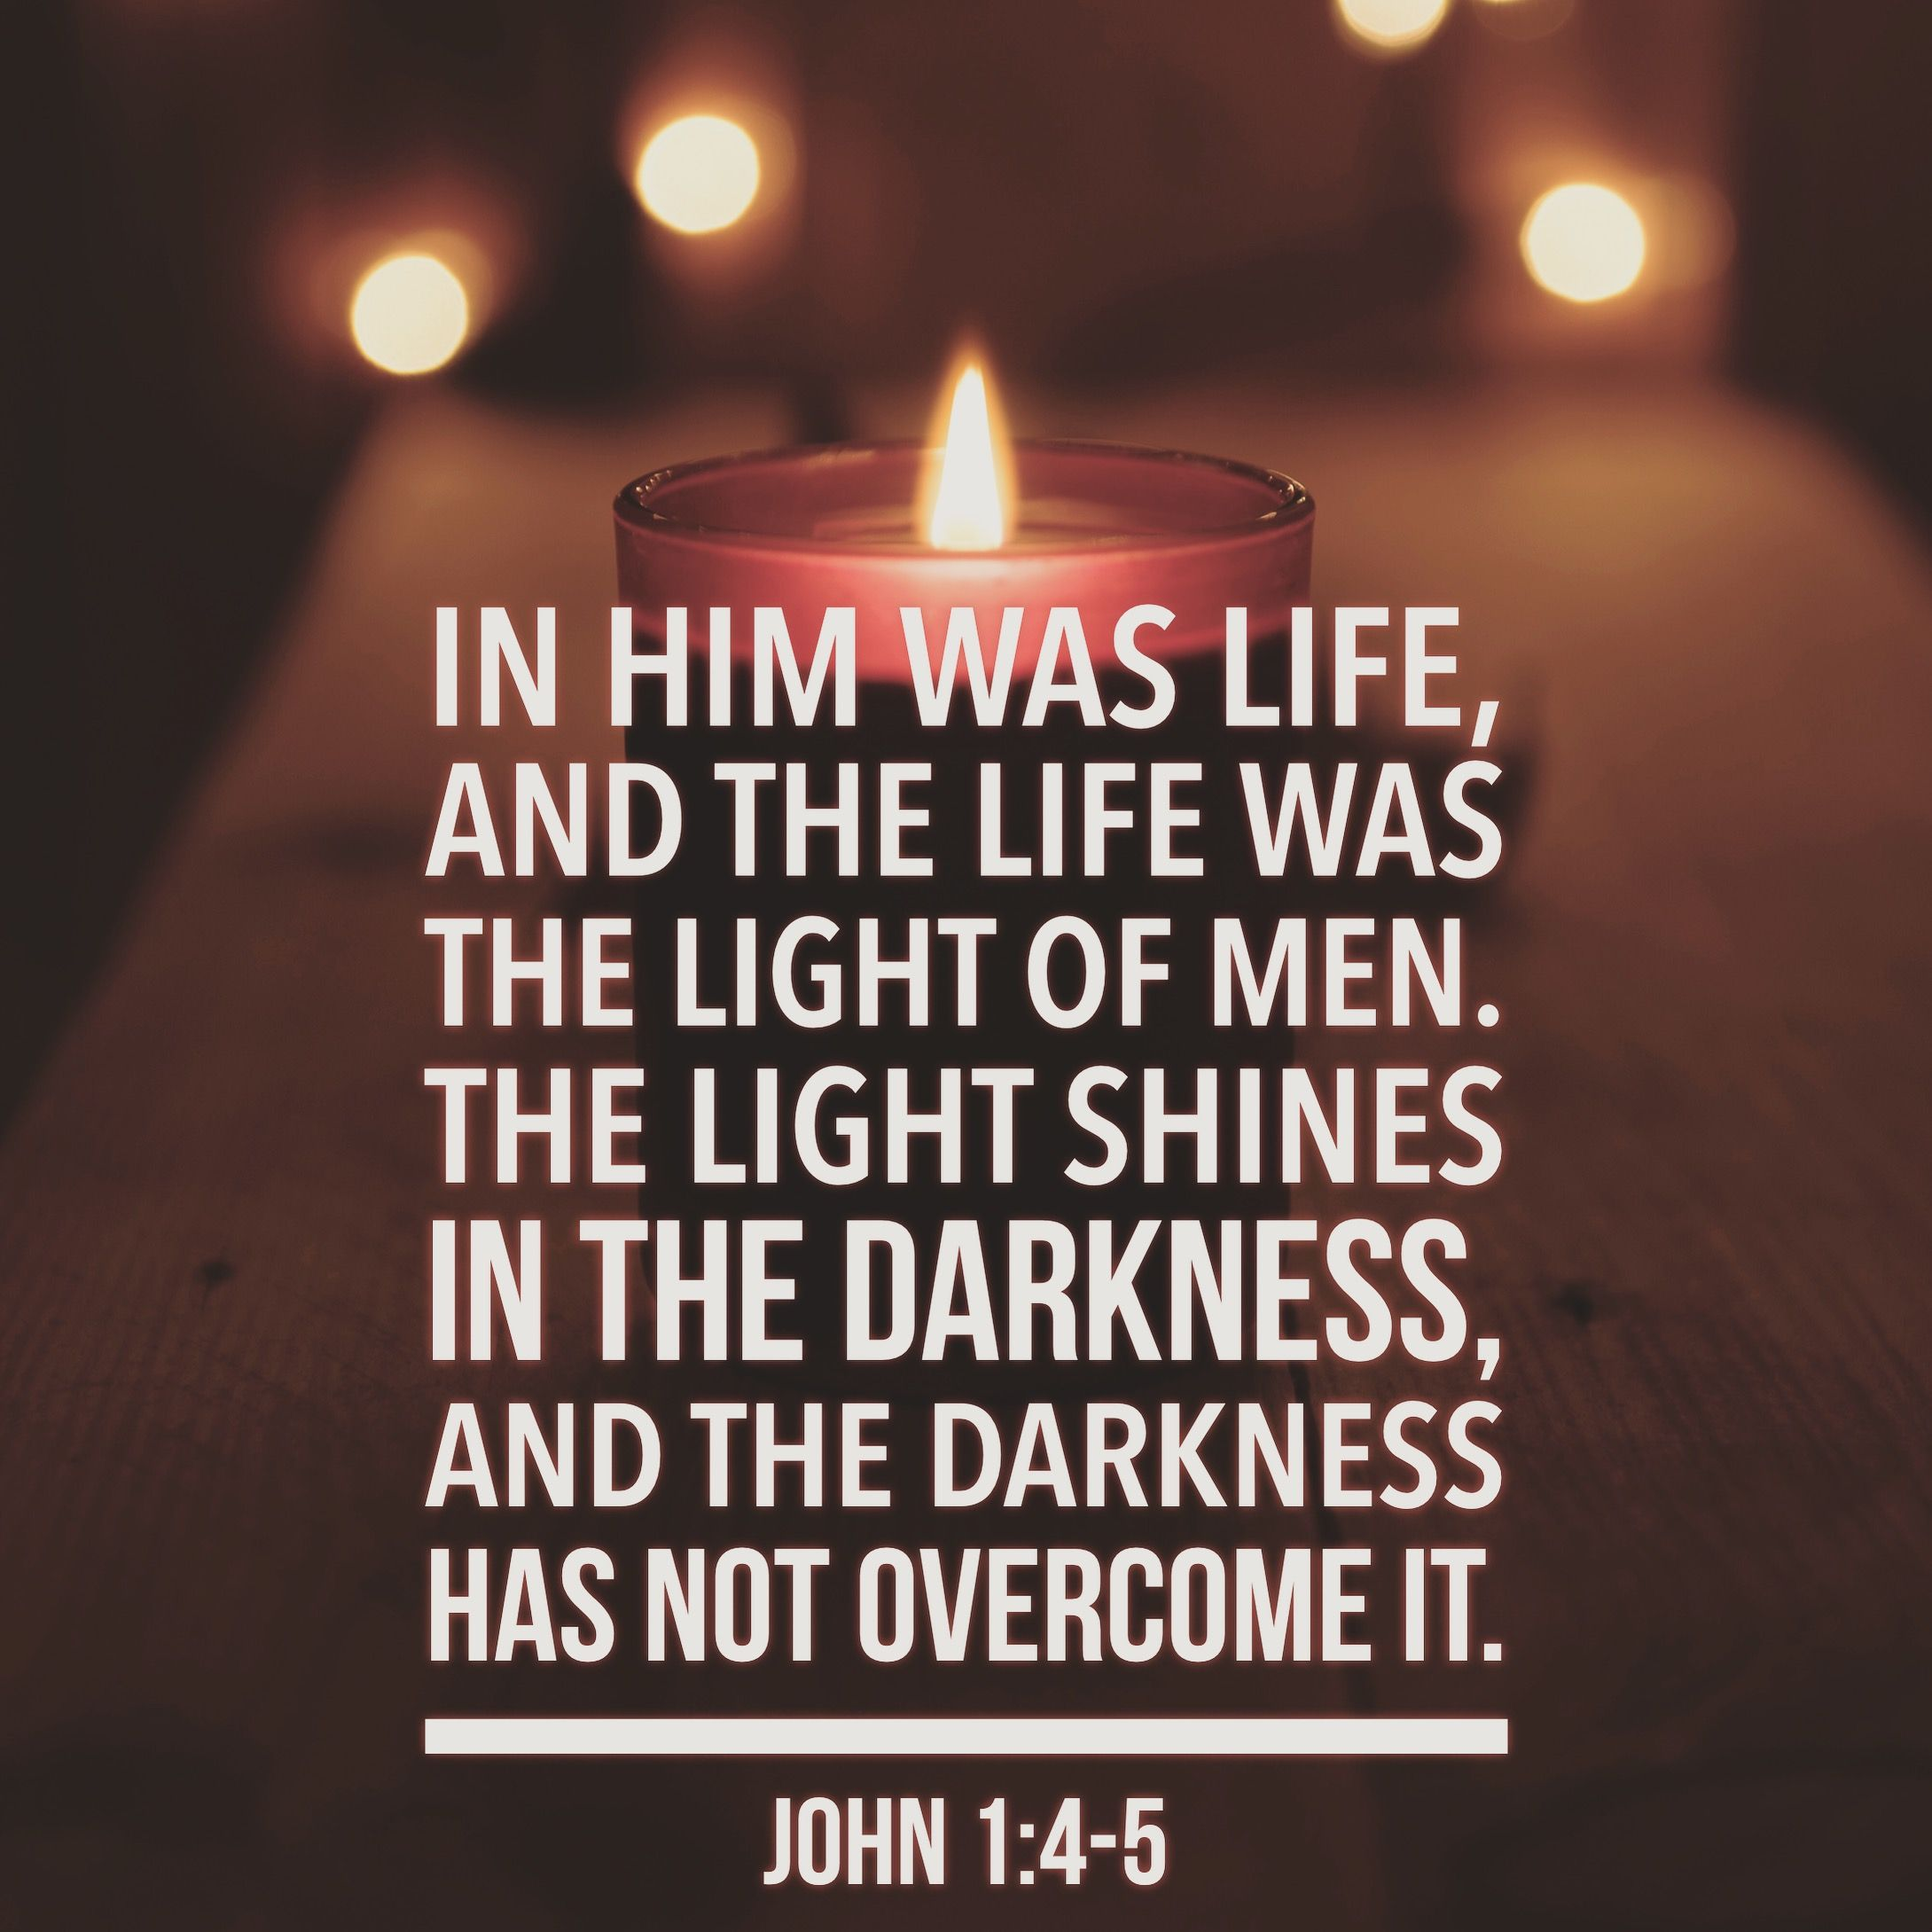 In Him Wa Life And The Light Of Men Shine Darknes Ha Not O Bible Prayer Faith Inspiration Proverbs Shining Out Paraphrase